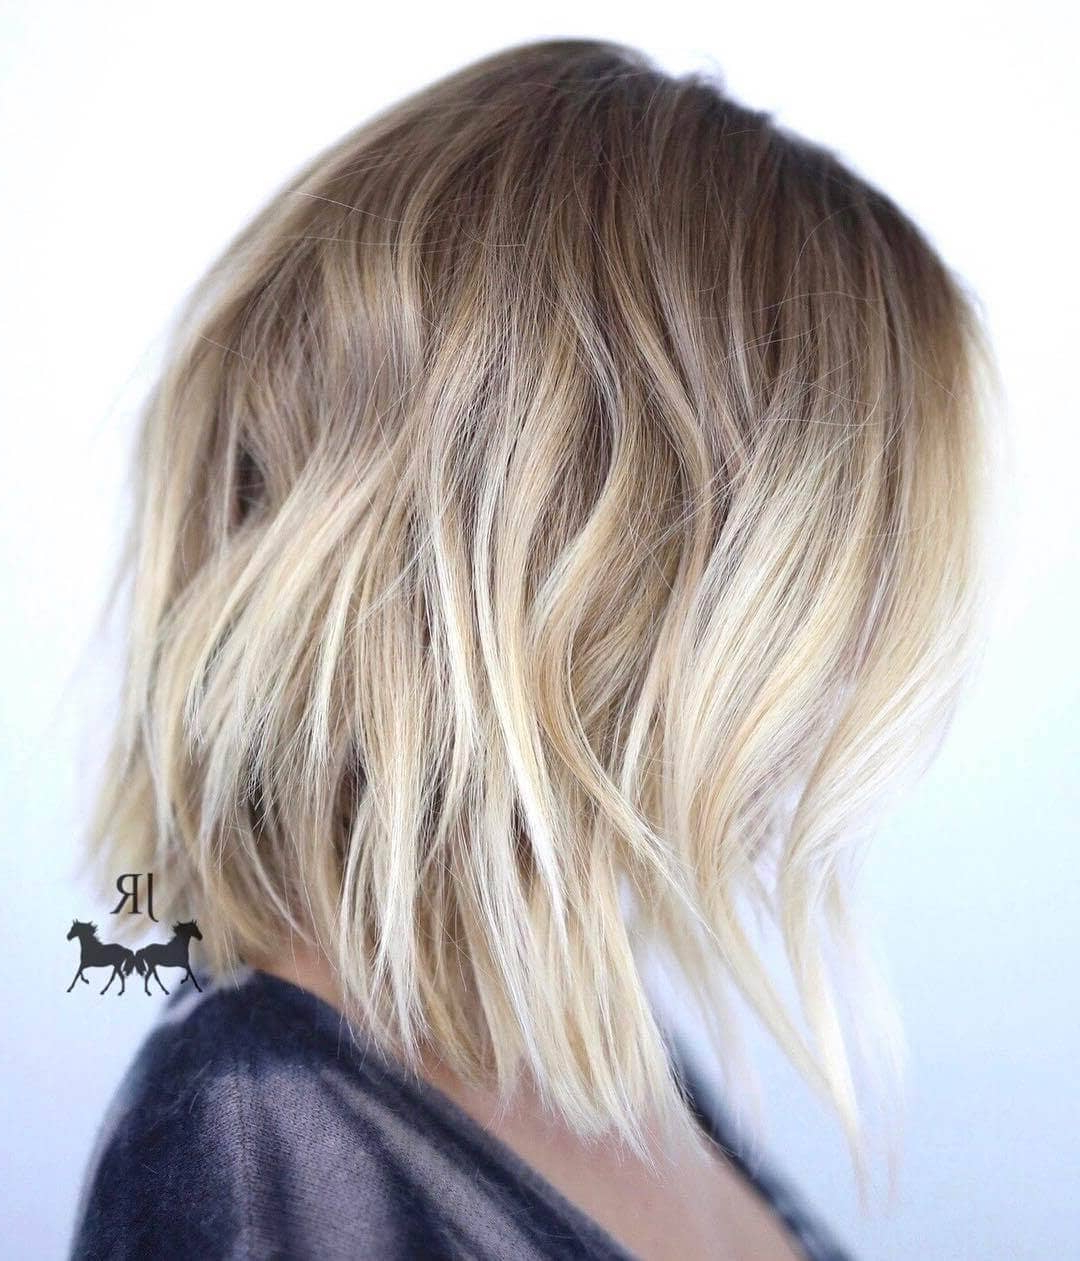 50 Fresh Short Blonde Hair Ideas To Update Your Style In 2018 For Short Blonde Styles (View 4 of 25)